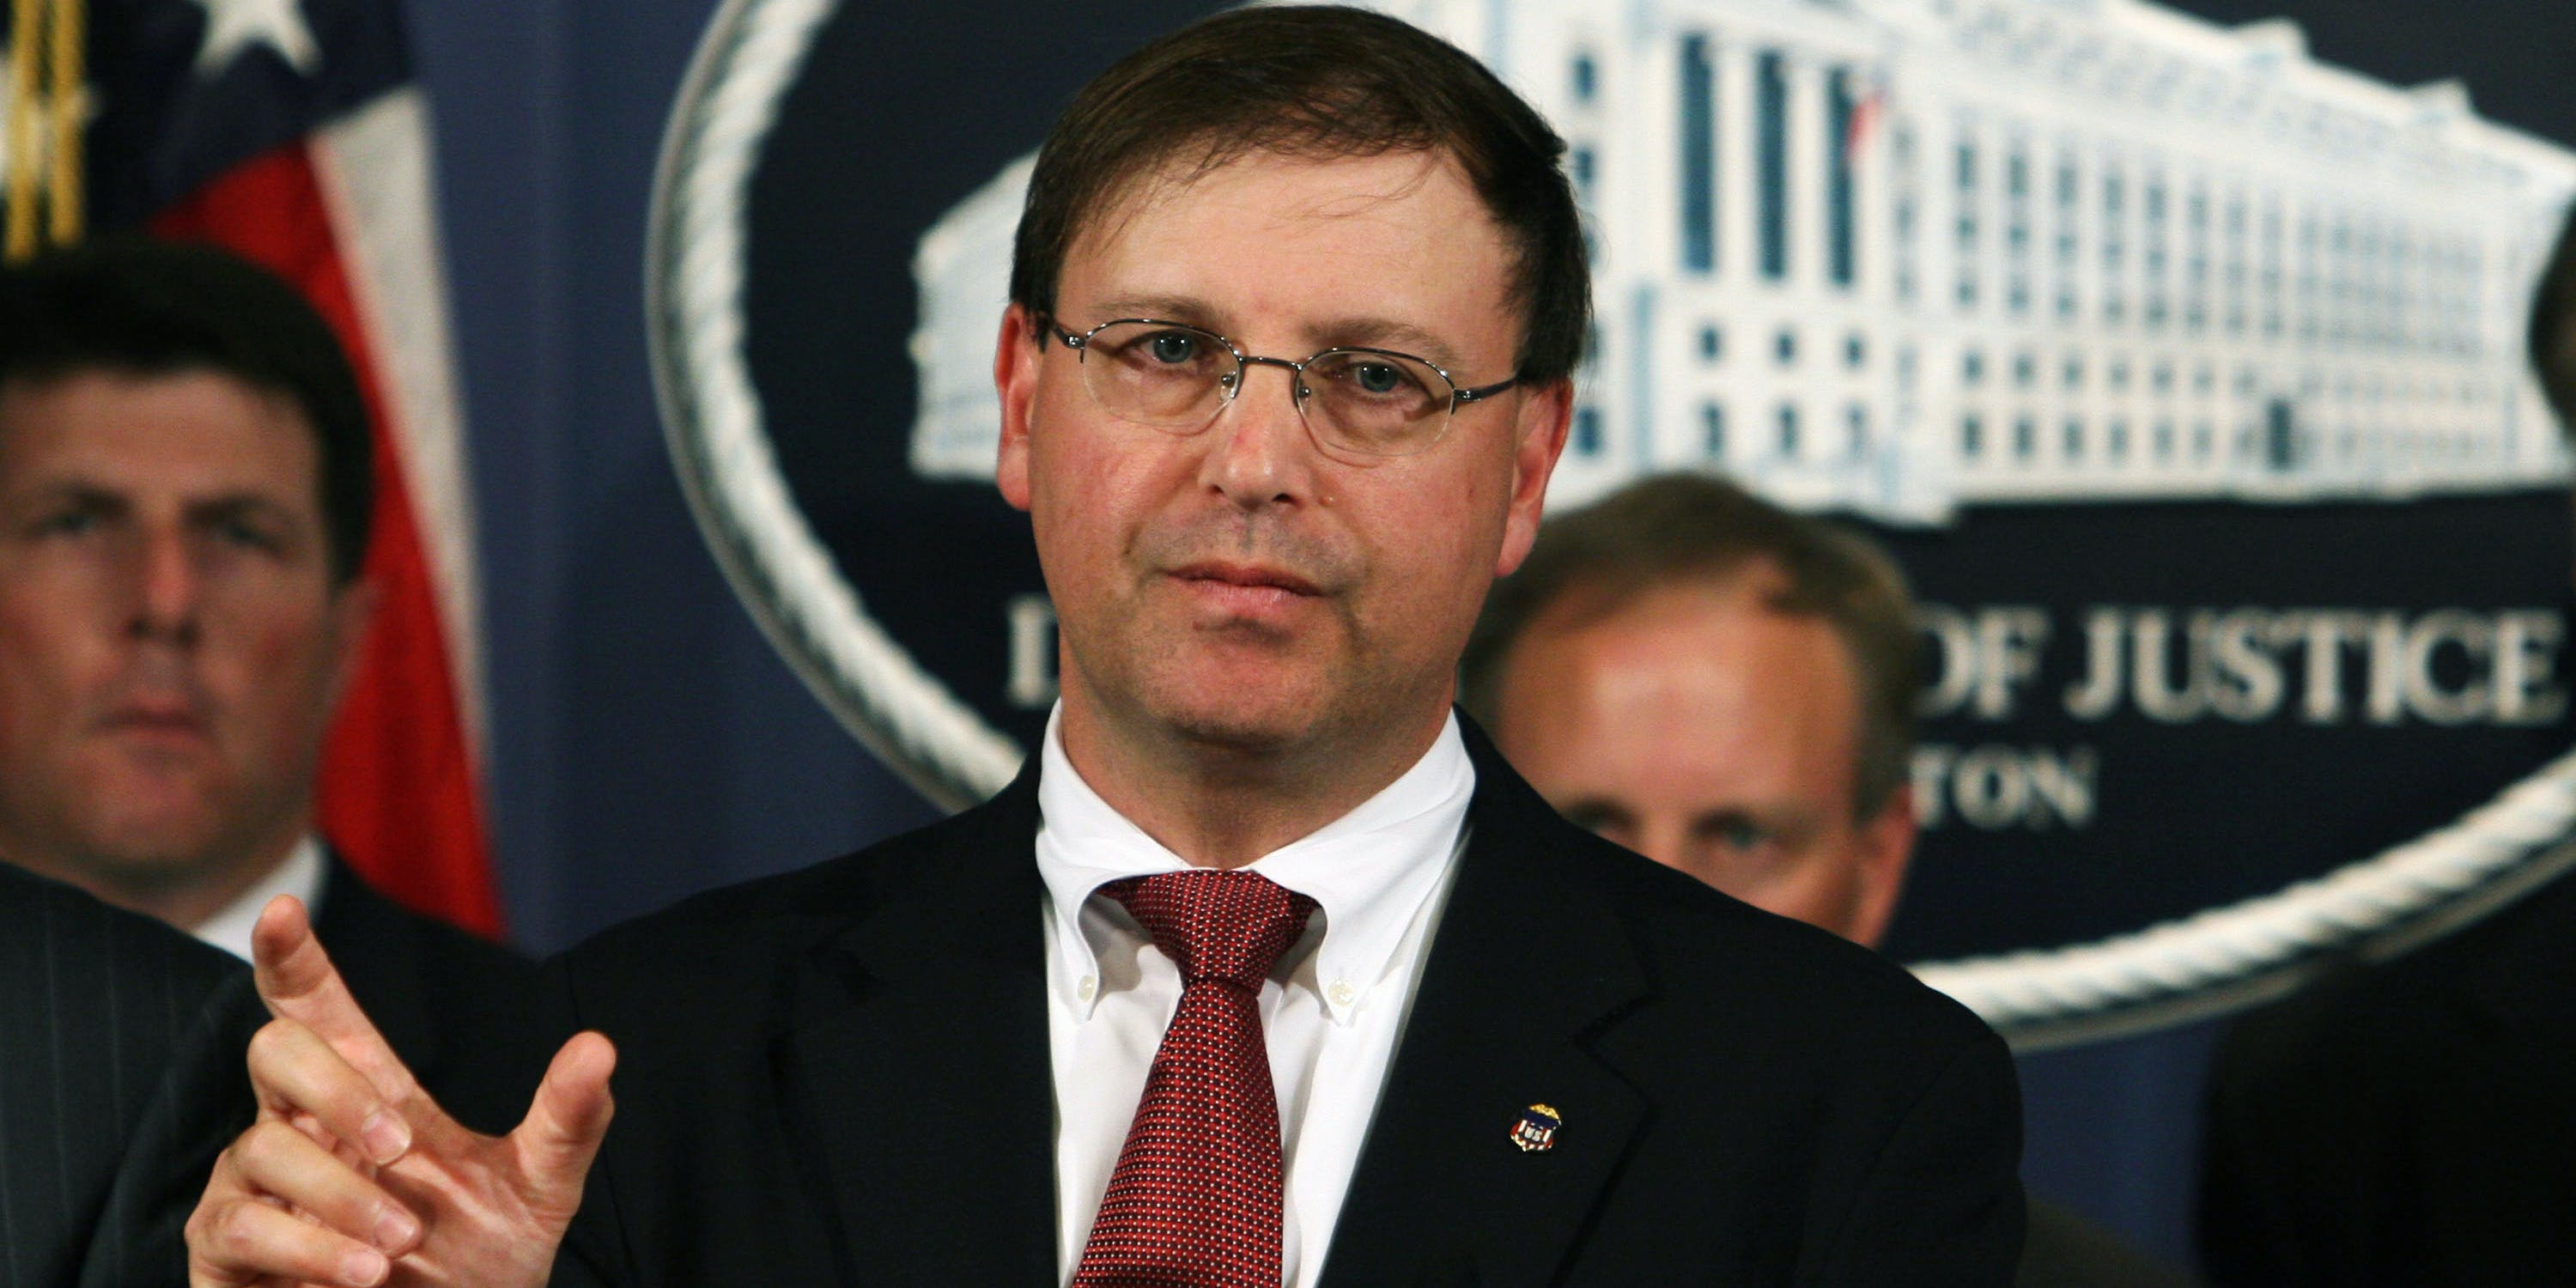 UNITED STATES - JUNE 04: Director of the DEA Chuck Rosenberg, then a US Attorney General of the Eastern District of Virginia, speaking at a news conference at the Department of Justice in Washington, D.C., June 4, 2007. Experts remain uncertain about whether the DEA will reclassify Epidiolex or CBD itself following FDA approval of Epidiolex for epilepsy on Monday, June 25. (Photo by Chris Kleponis/Bloomberg via Getty Images)